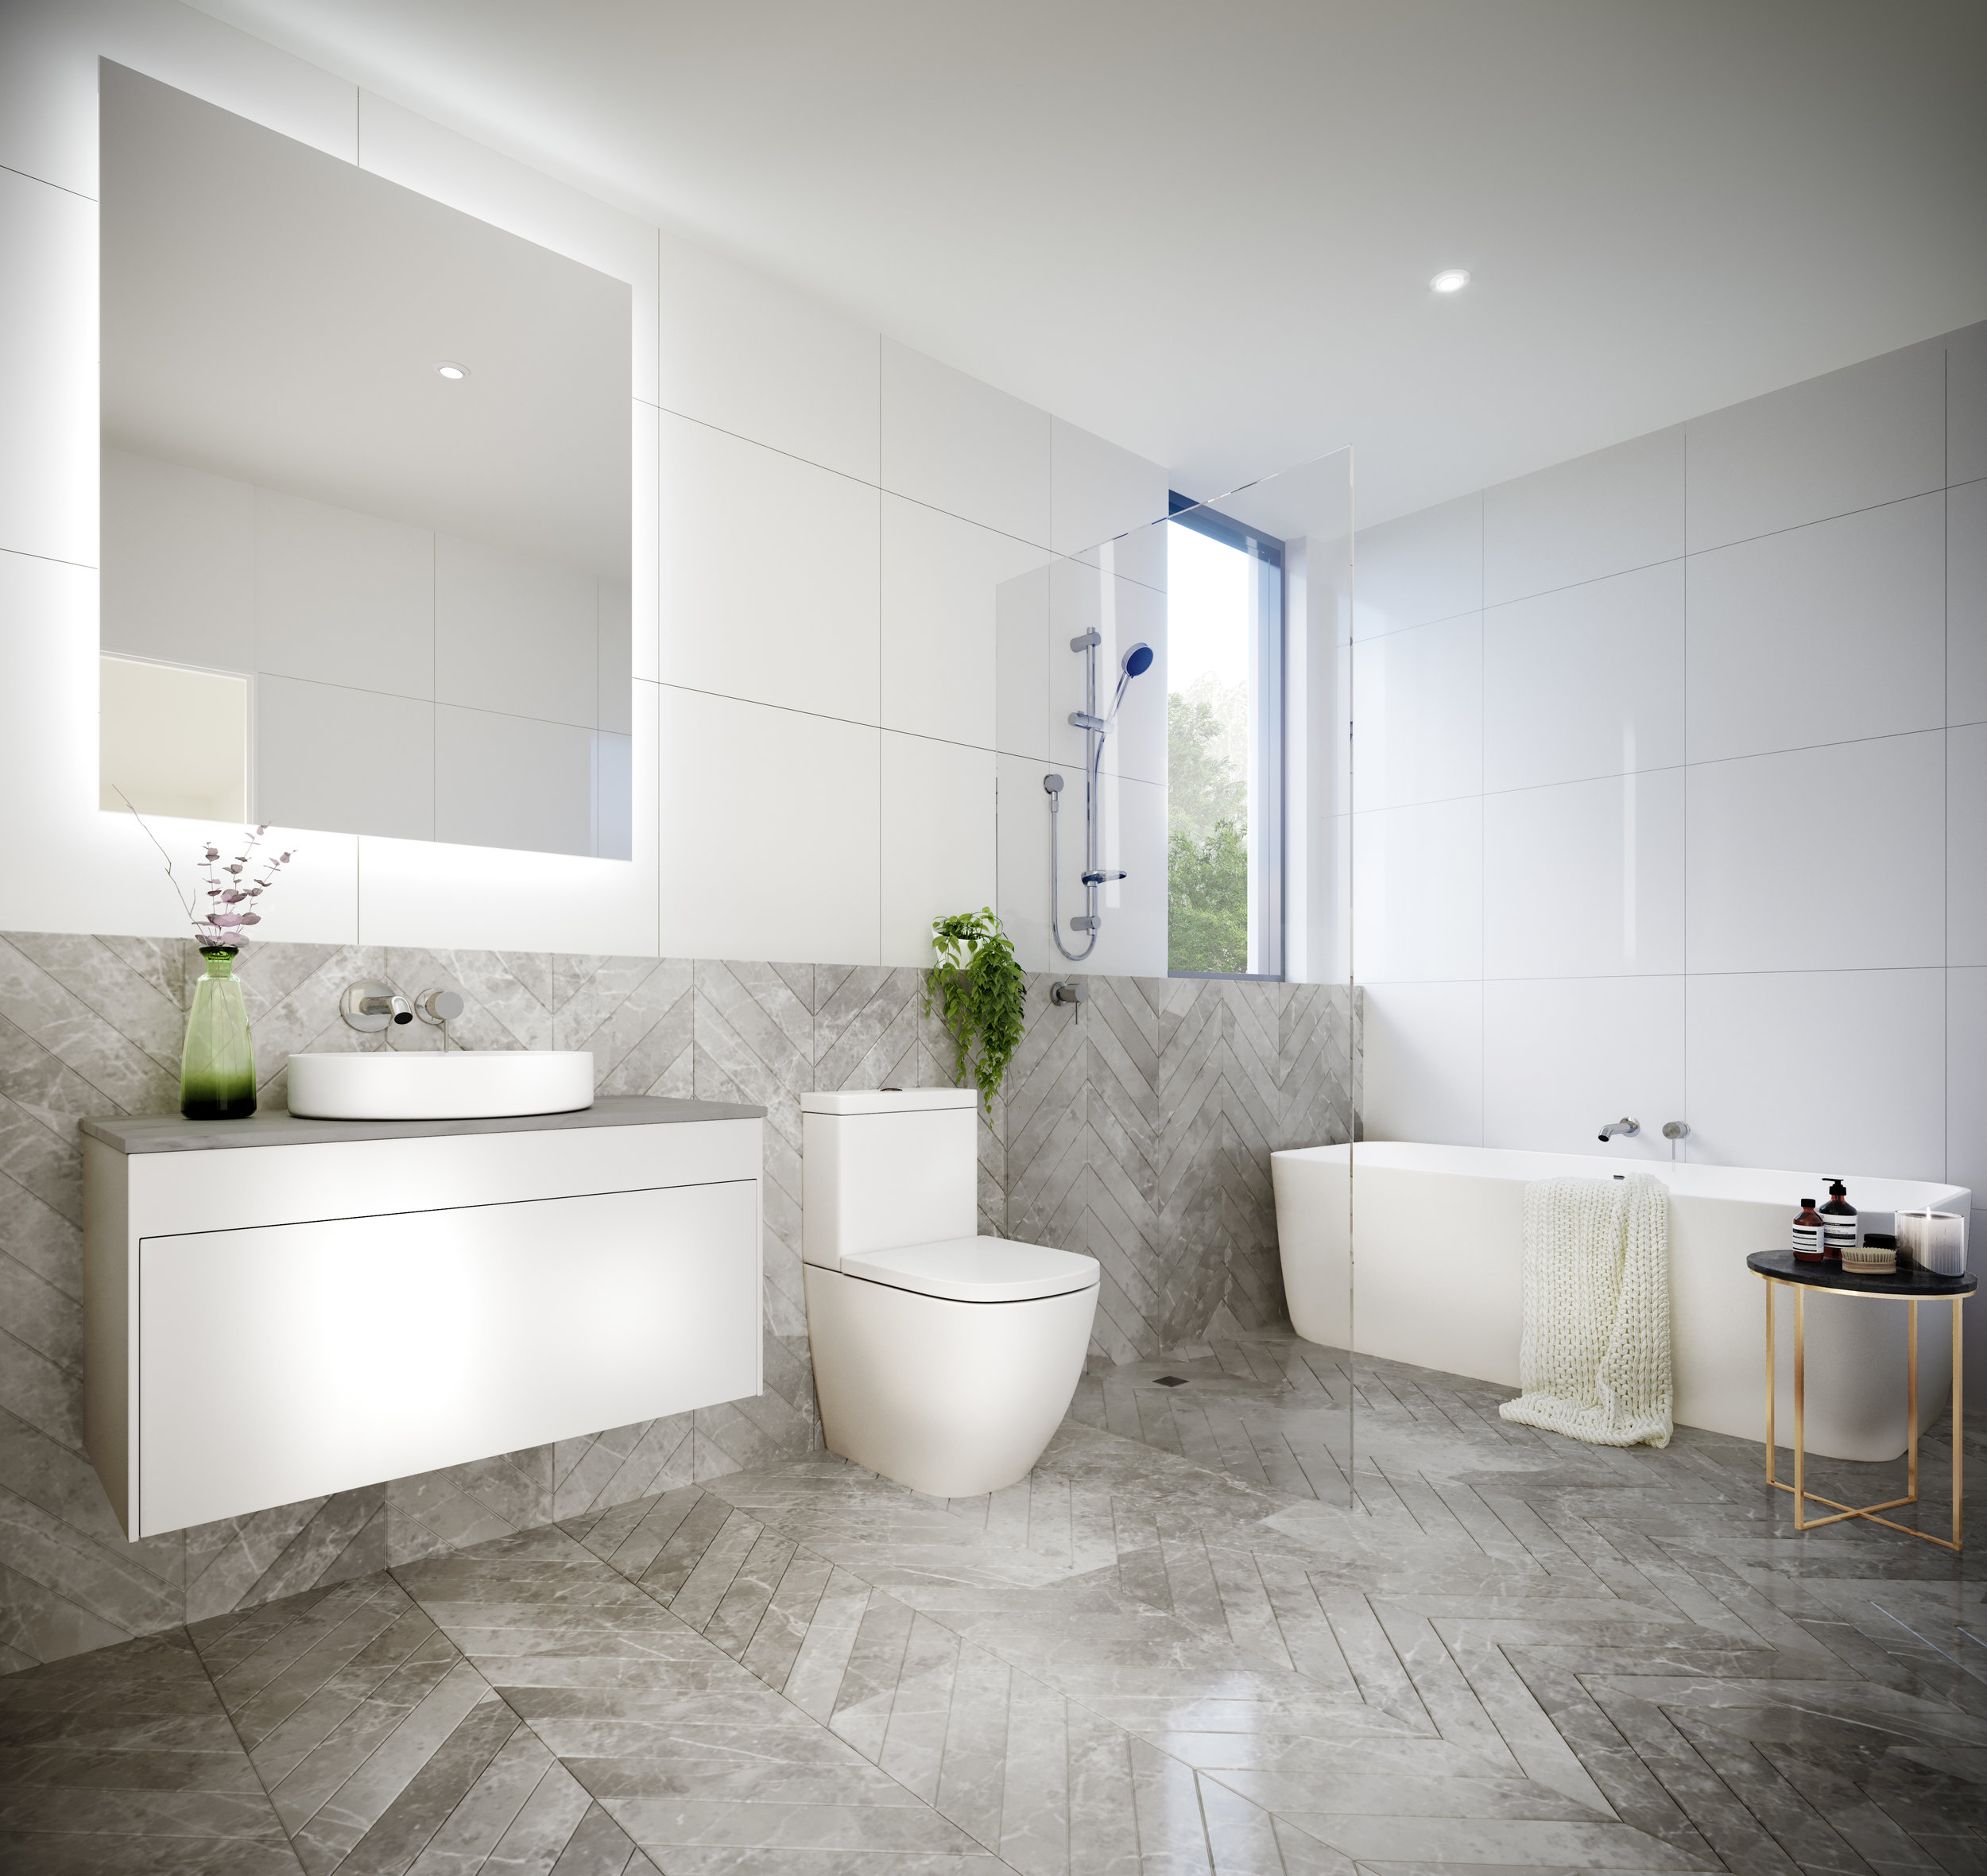 aria-rendering-bathroom-XL.jpg